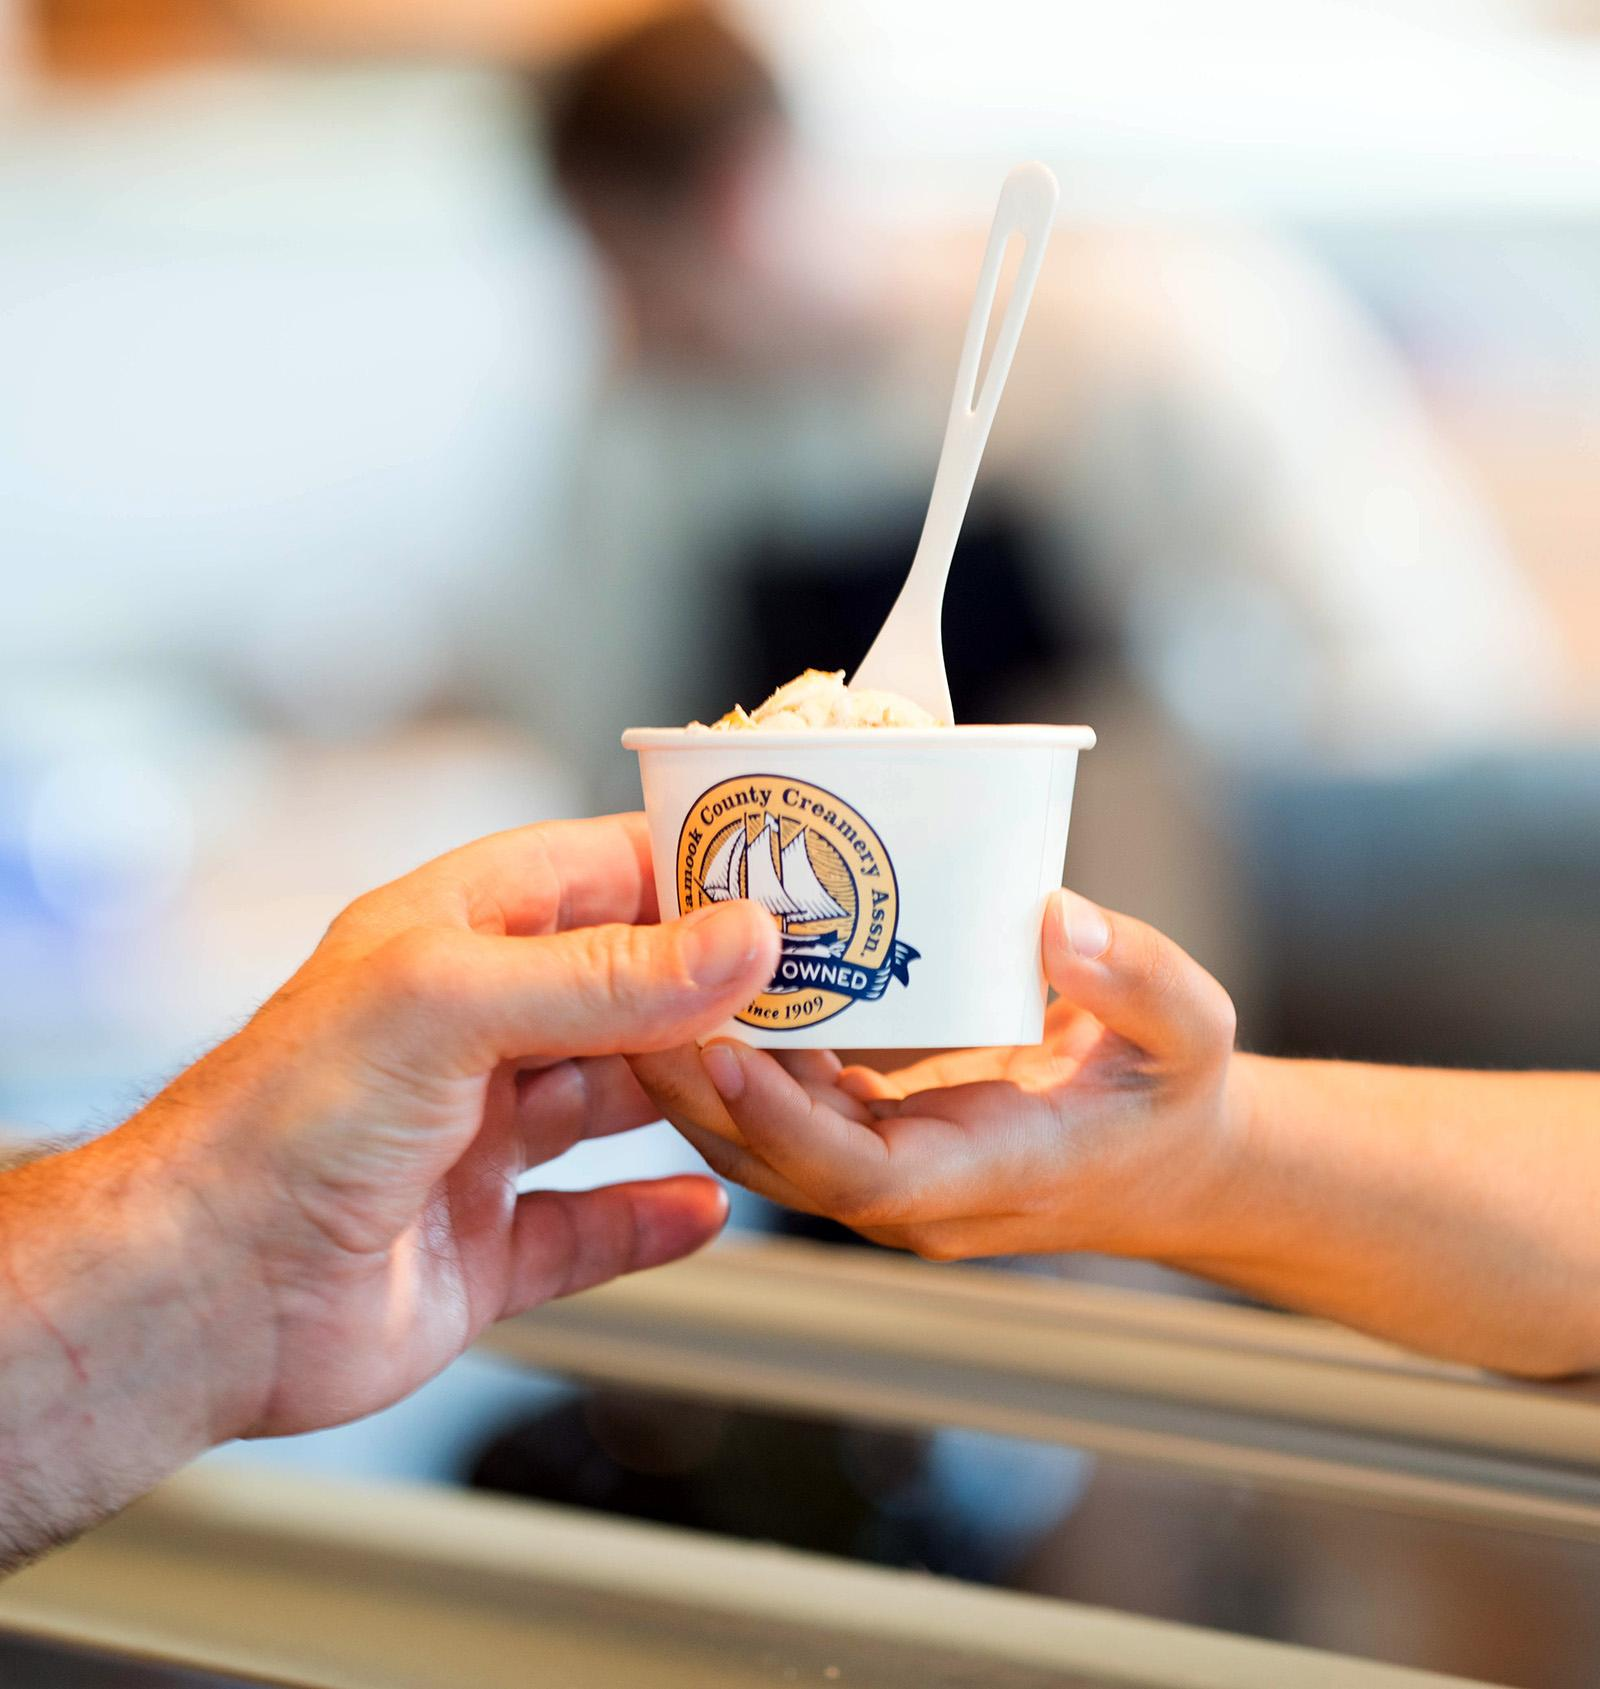 After nearly two years of renovations, Tillamook Creamery is reopening its Visitor Center at the factory. The facility has some of the old favorites, like the ice cream counter, views of the factory floor, and squeaky cheese at the end of tours, along with some new amenities like a wood-fired pizza oven and café space. (KATU image by Tristan Fortsch on June 19, 2018)